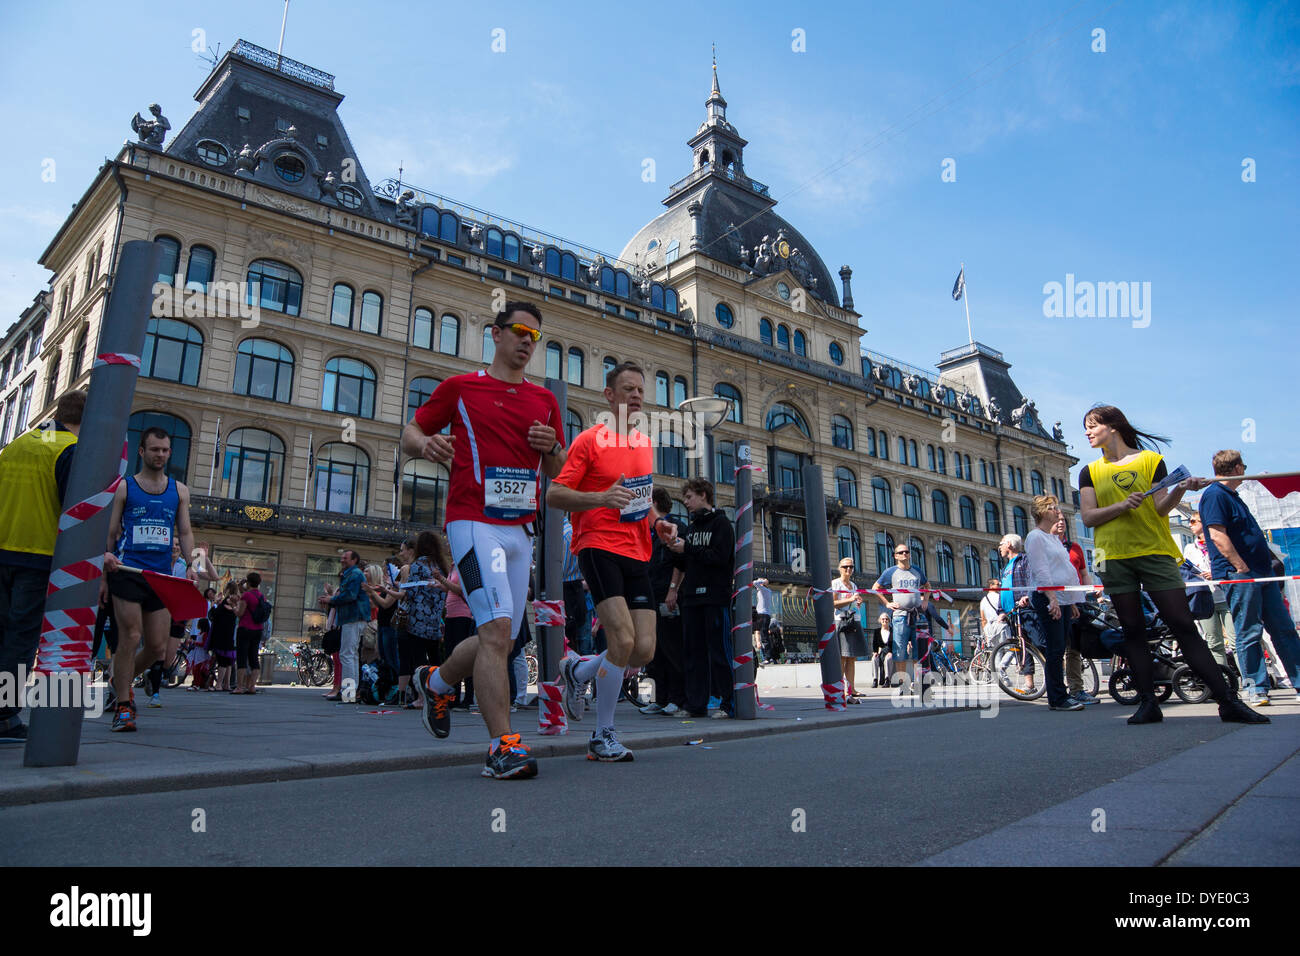 Copenhagen marathon has become a wellknown race with participants from all over the world. - Stock Image